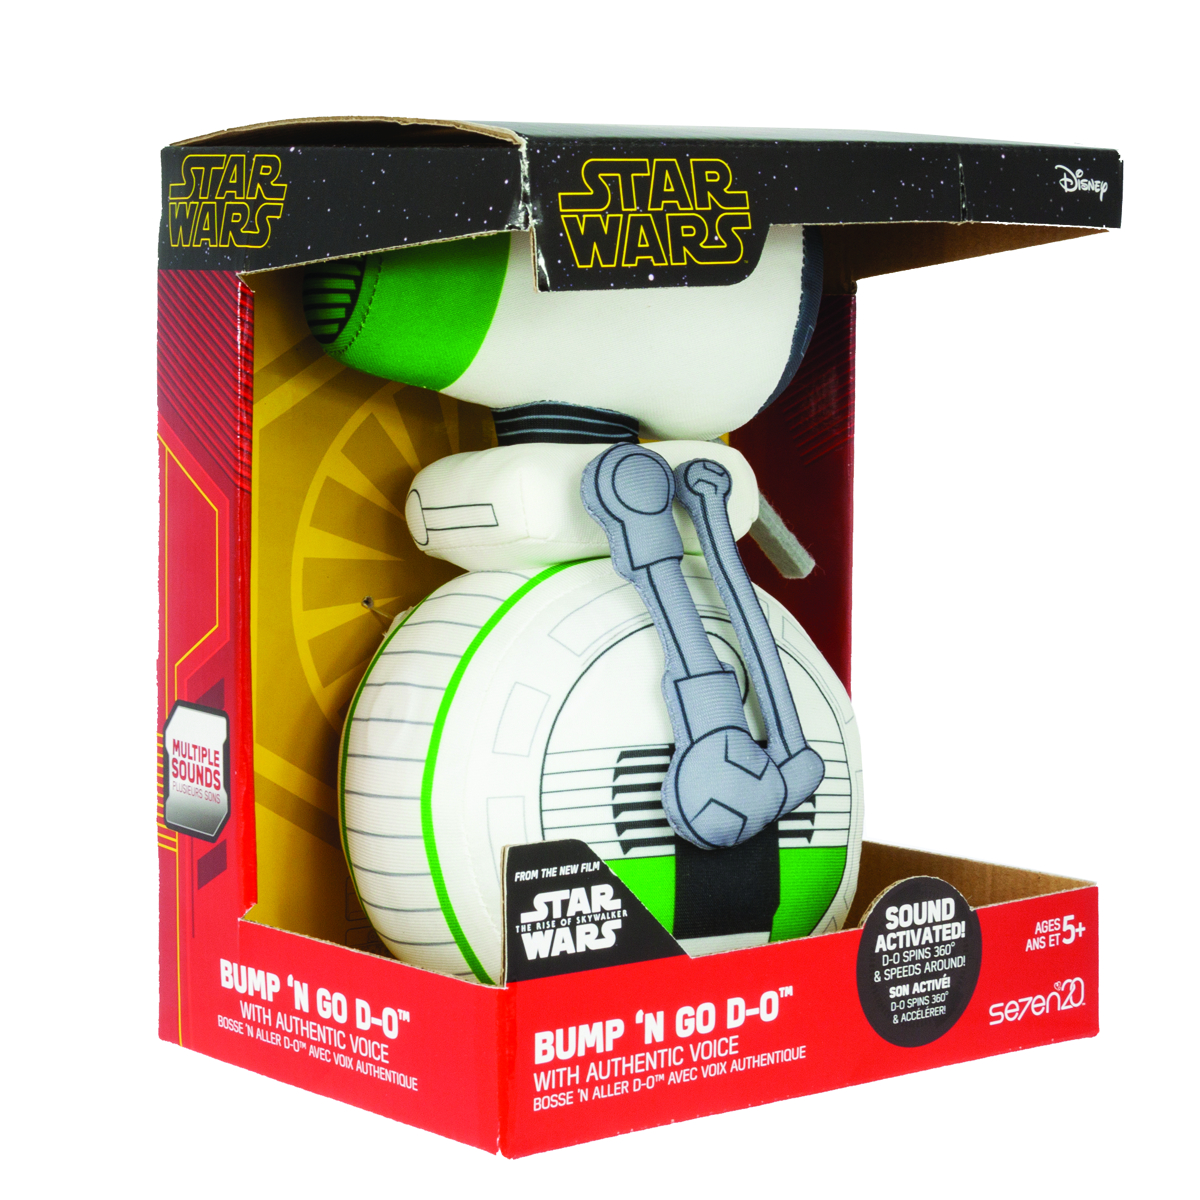 STAR WARS RISE OF SKYWALKER BUMP-N-GO D-O PLUSH